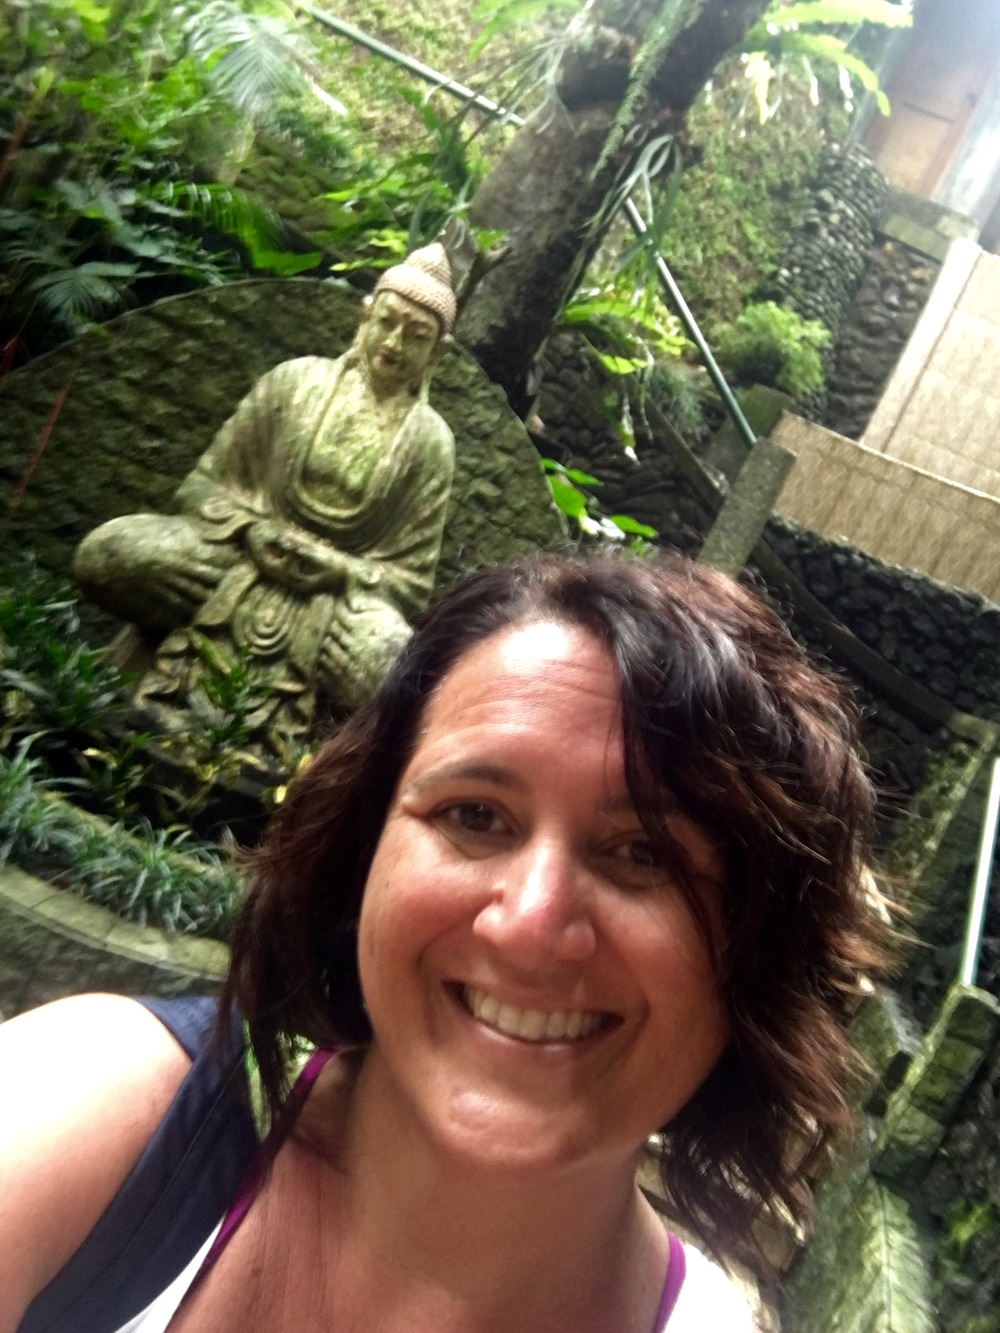 A selfie with a Buddha.  How do you like my rockin' Bali hair?  I have to embrace my curls here.